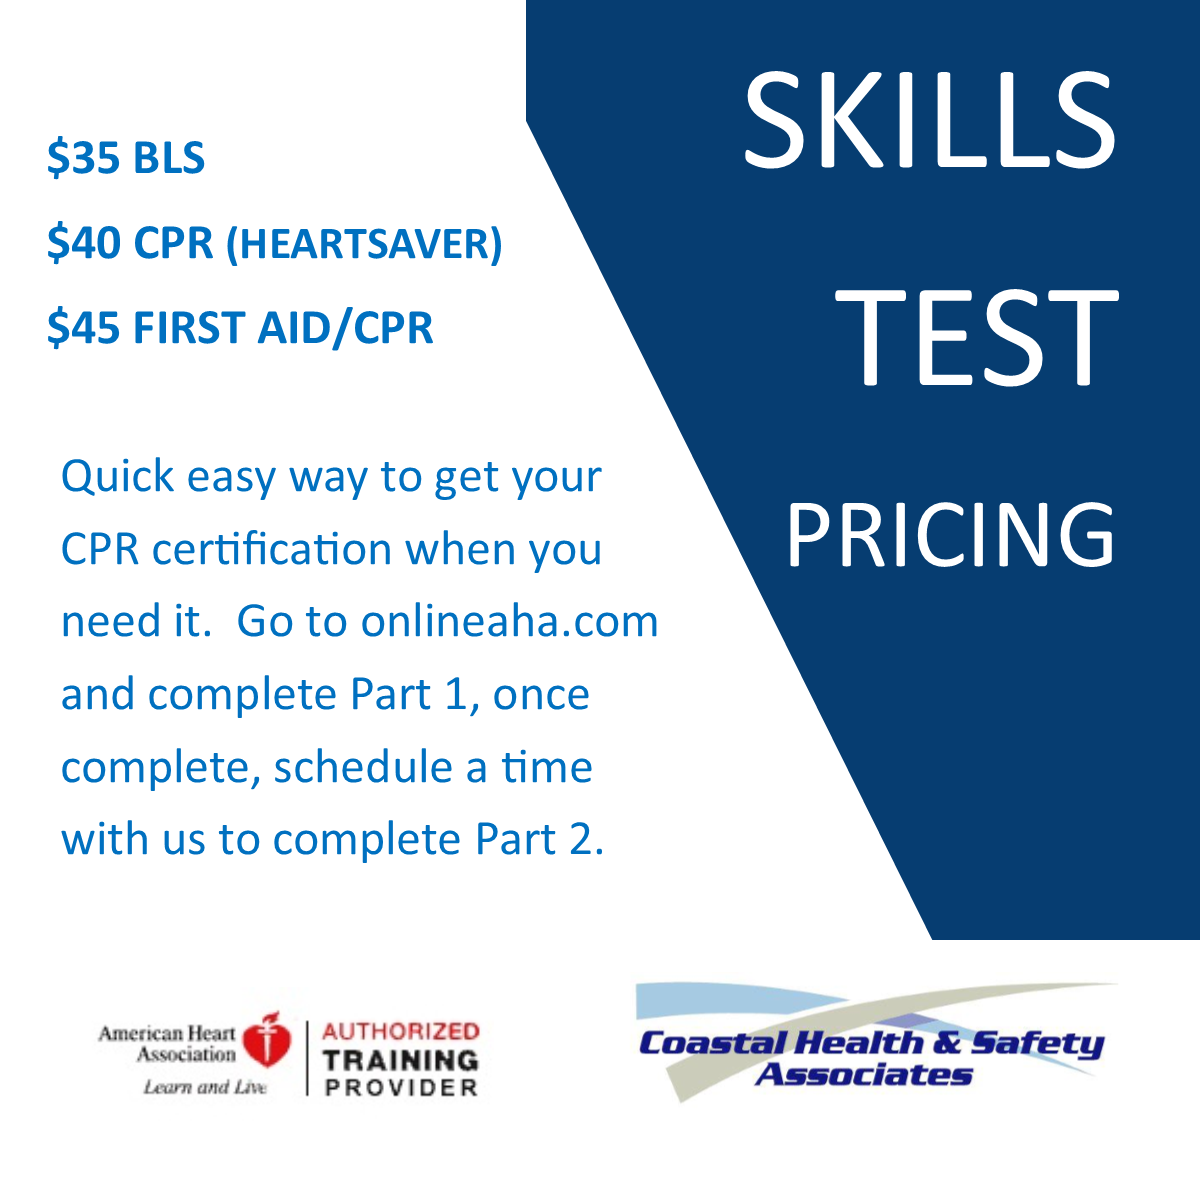 https://sites.google.com/a/coastalhealthandsafety.com/www/home/services-we-offer/CHSA%20skills%20test%20pricing.png